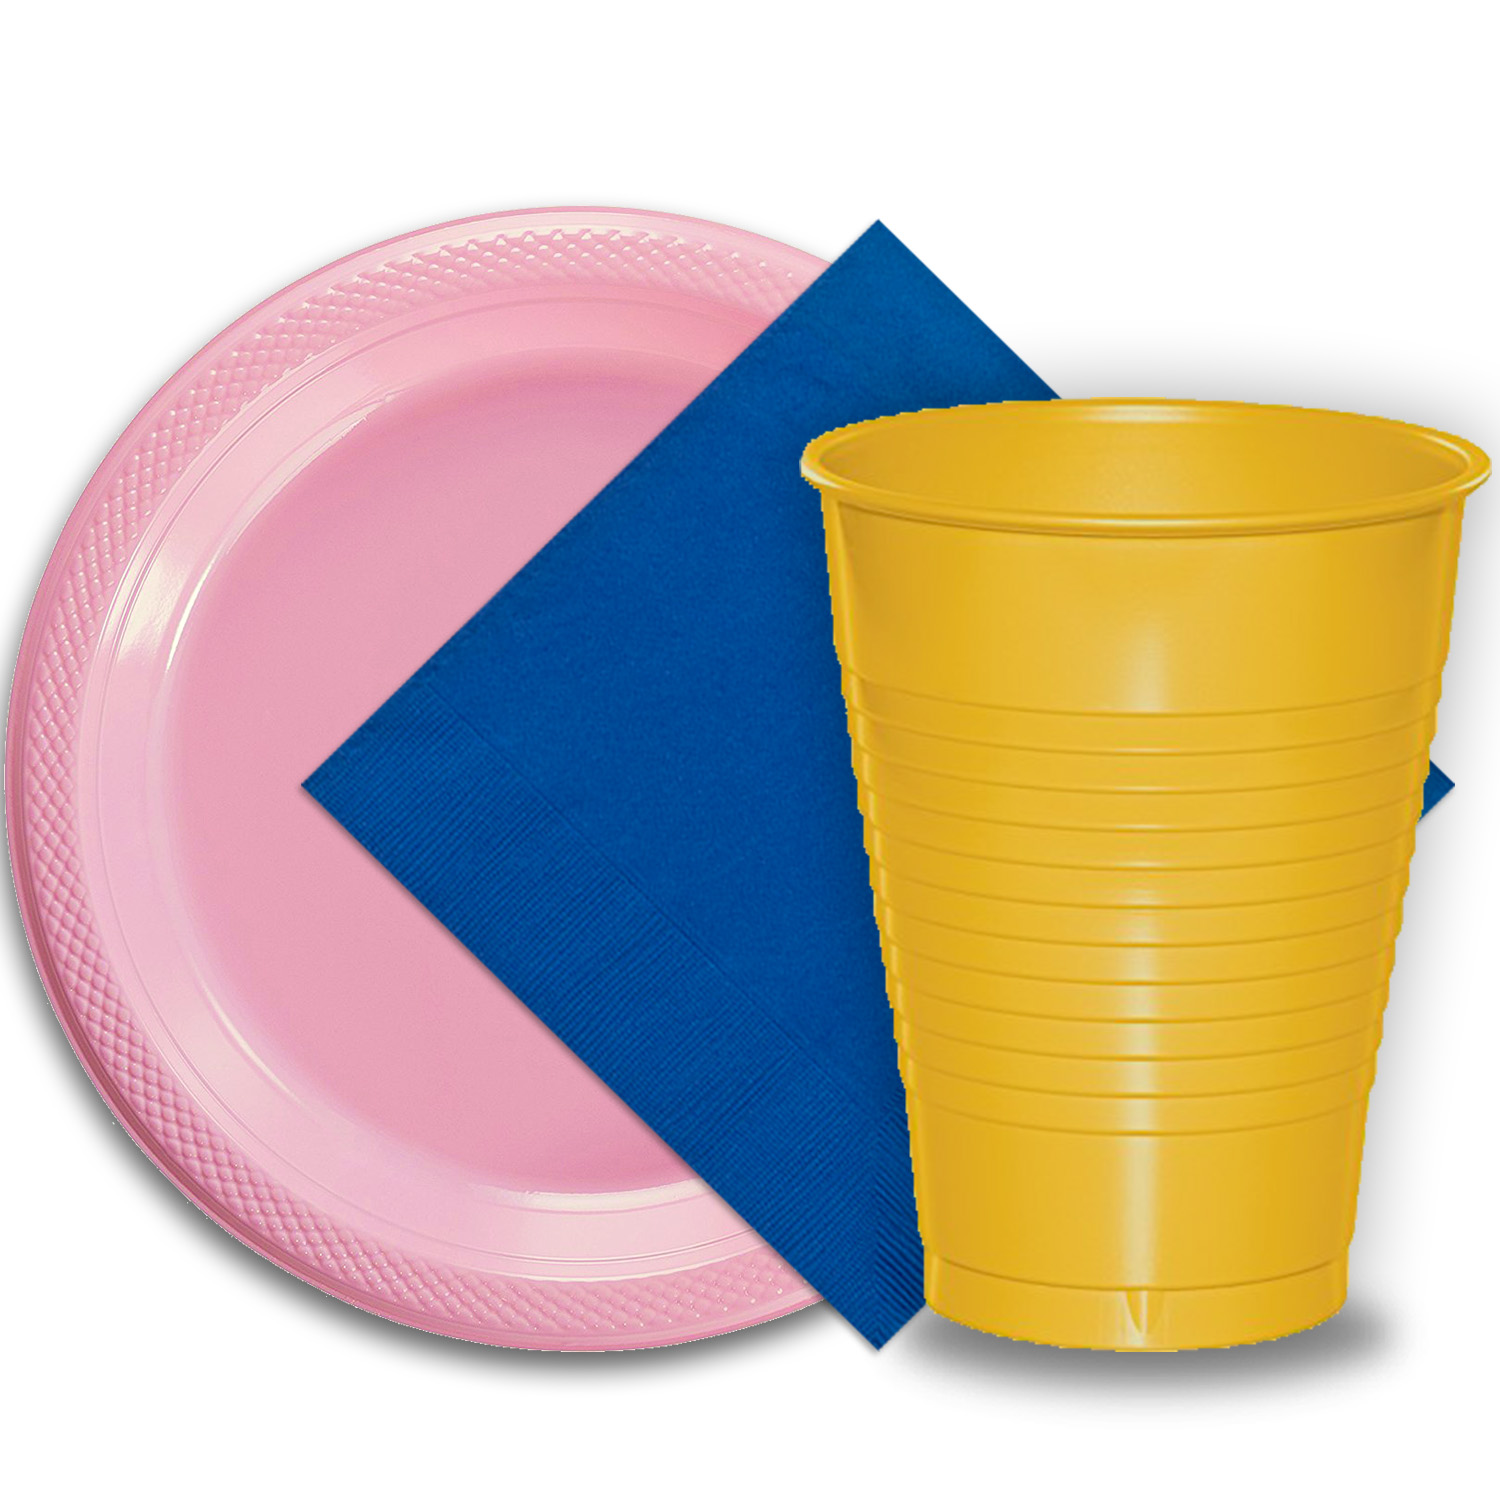 "50 Pink Plastic Plates (9""), 50 Yellow Plastic Cups (12 oz.), and 50 Dark Blue Paper Napkins, Dazzelling Colored Disposable Party Supplies Tableware Set for Fifty Guests."